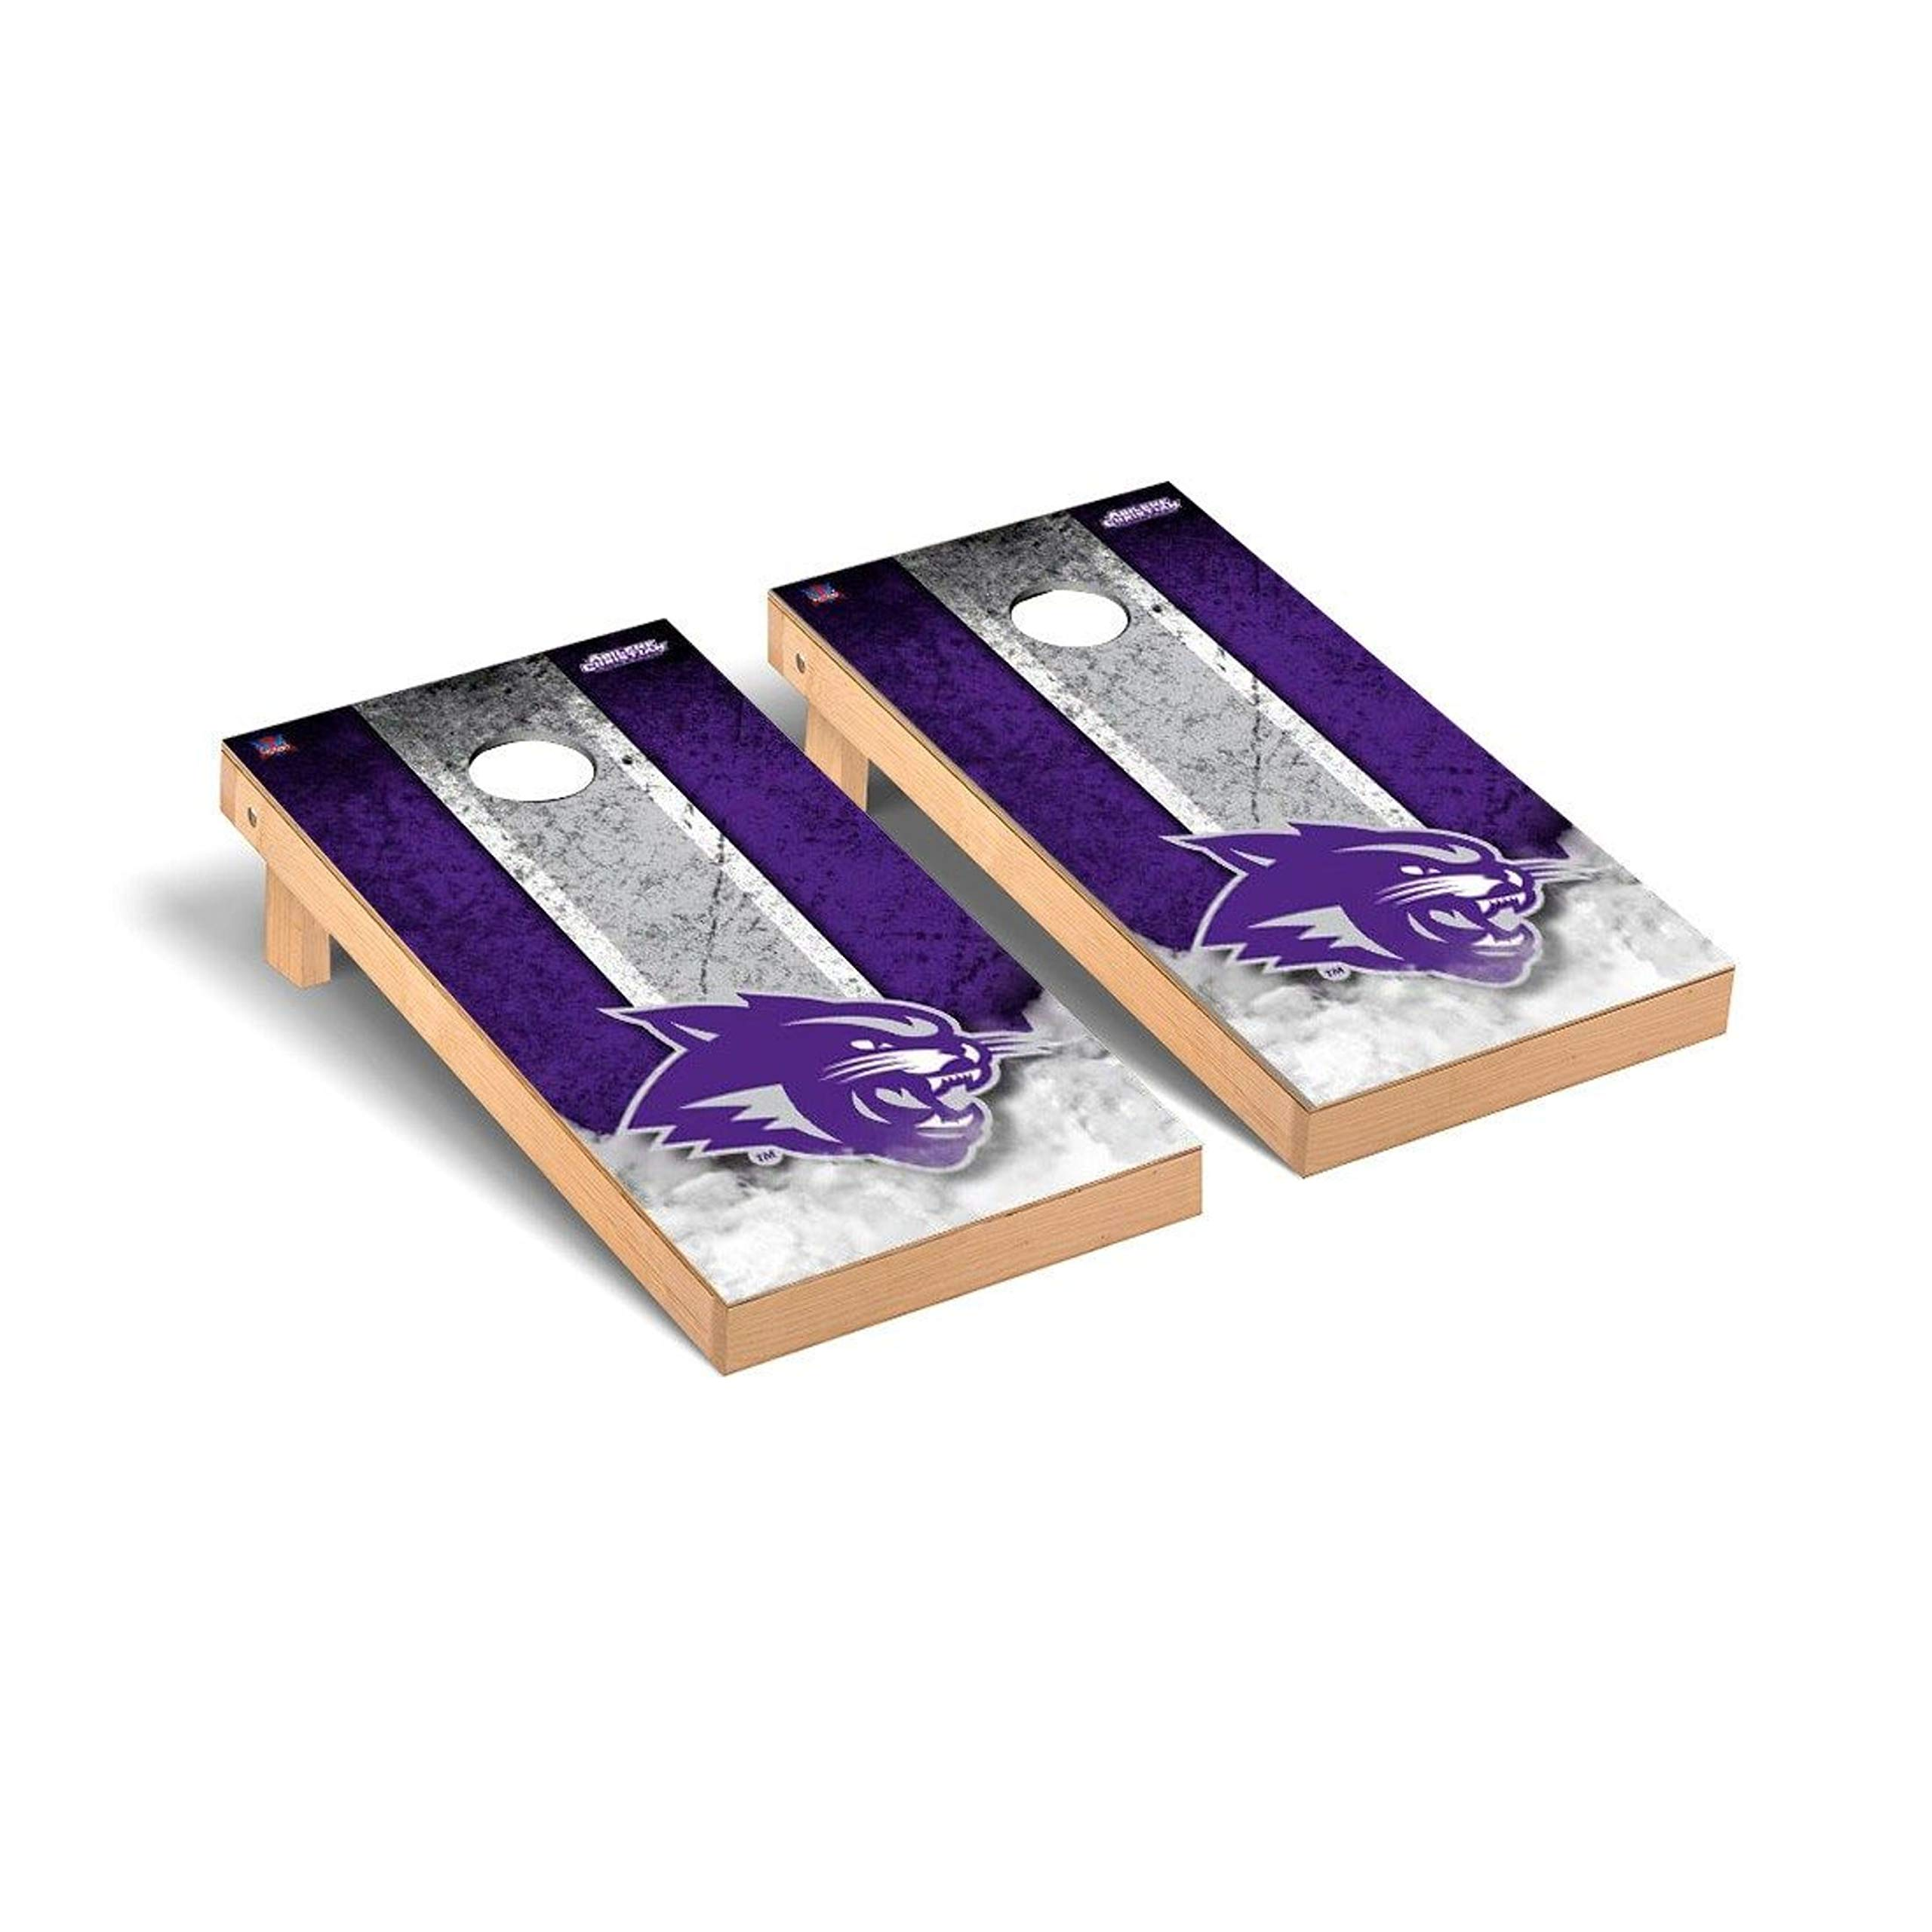 Victory Tailgate Regulation Collegiate NCAA Vintage Series Cornhole Board Set - 2 Boards, 8 Bags - Abilene Christian Wildcats